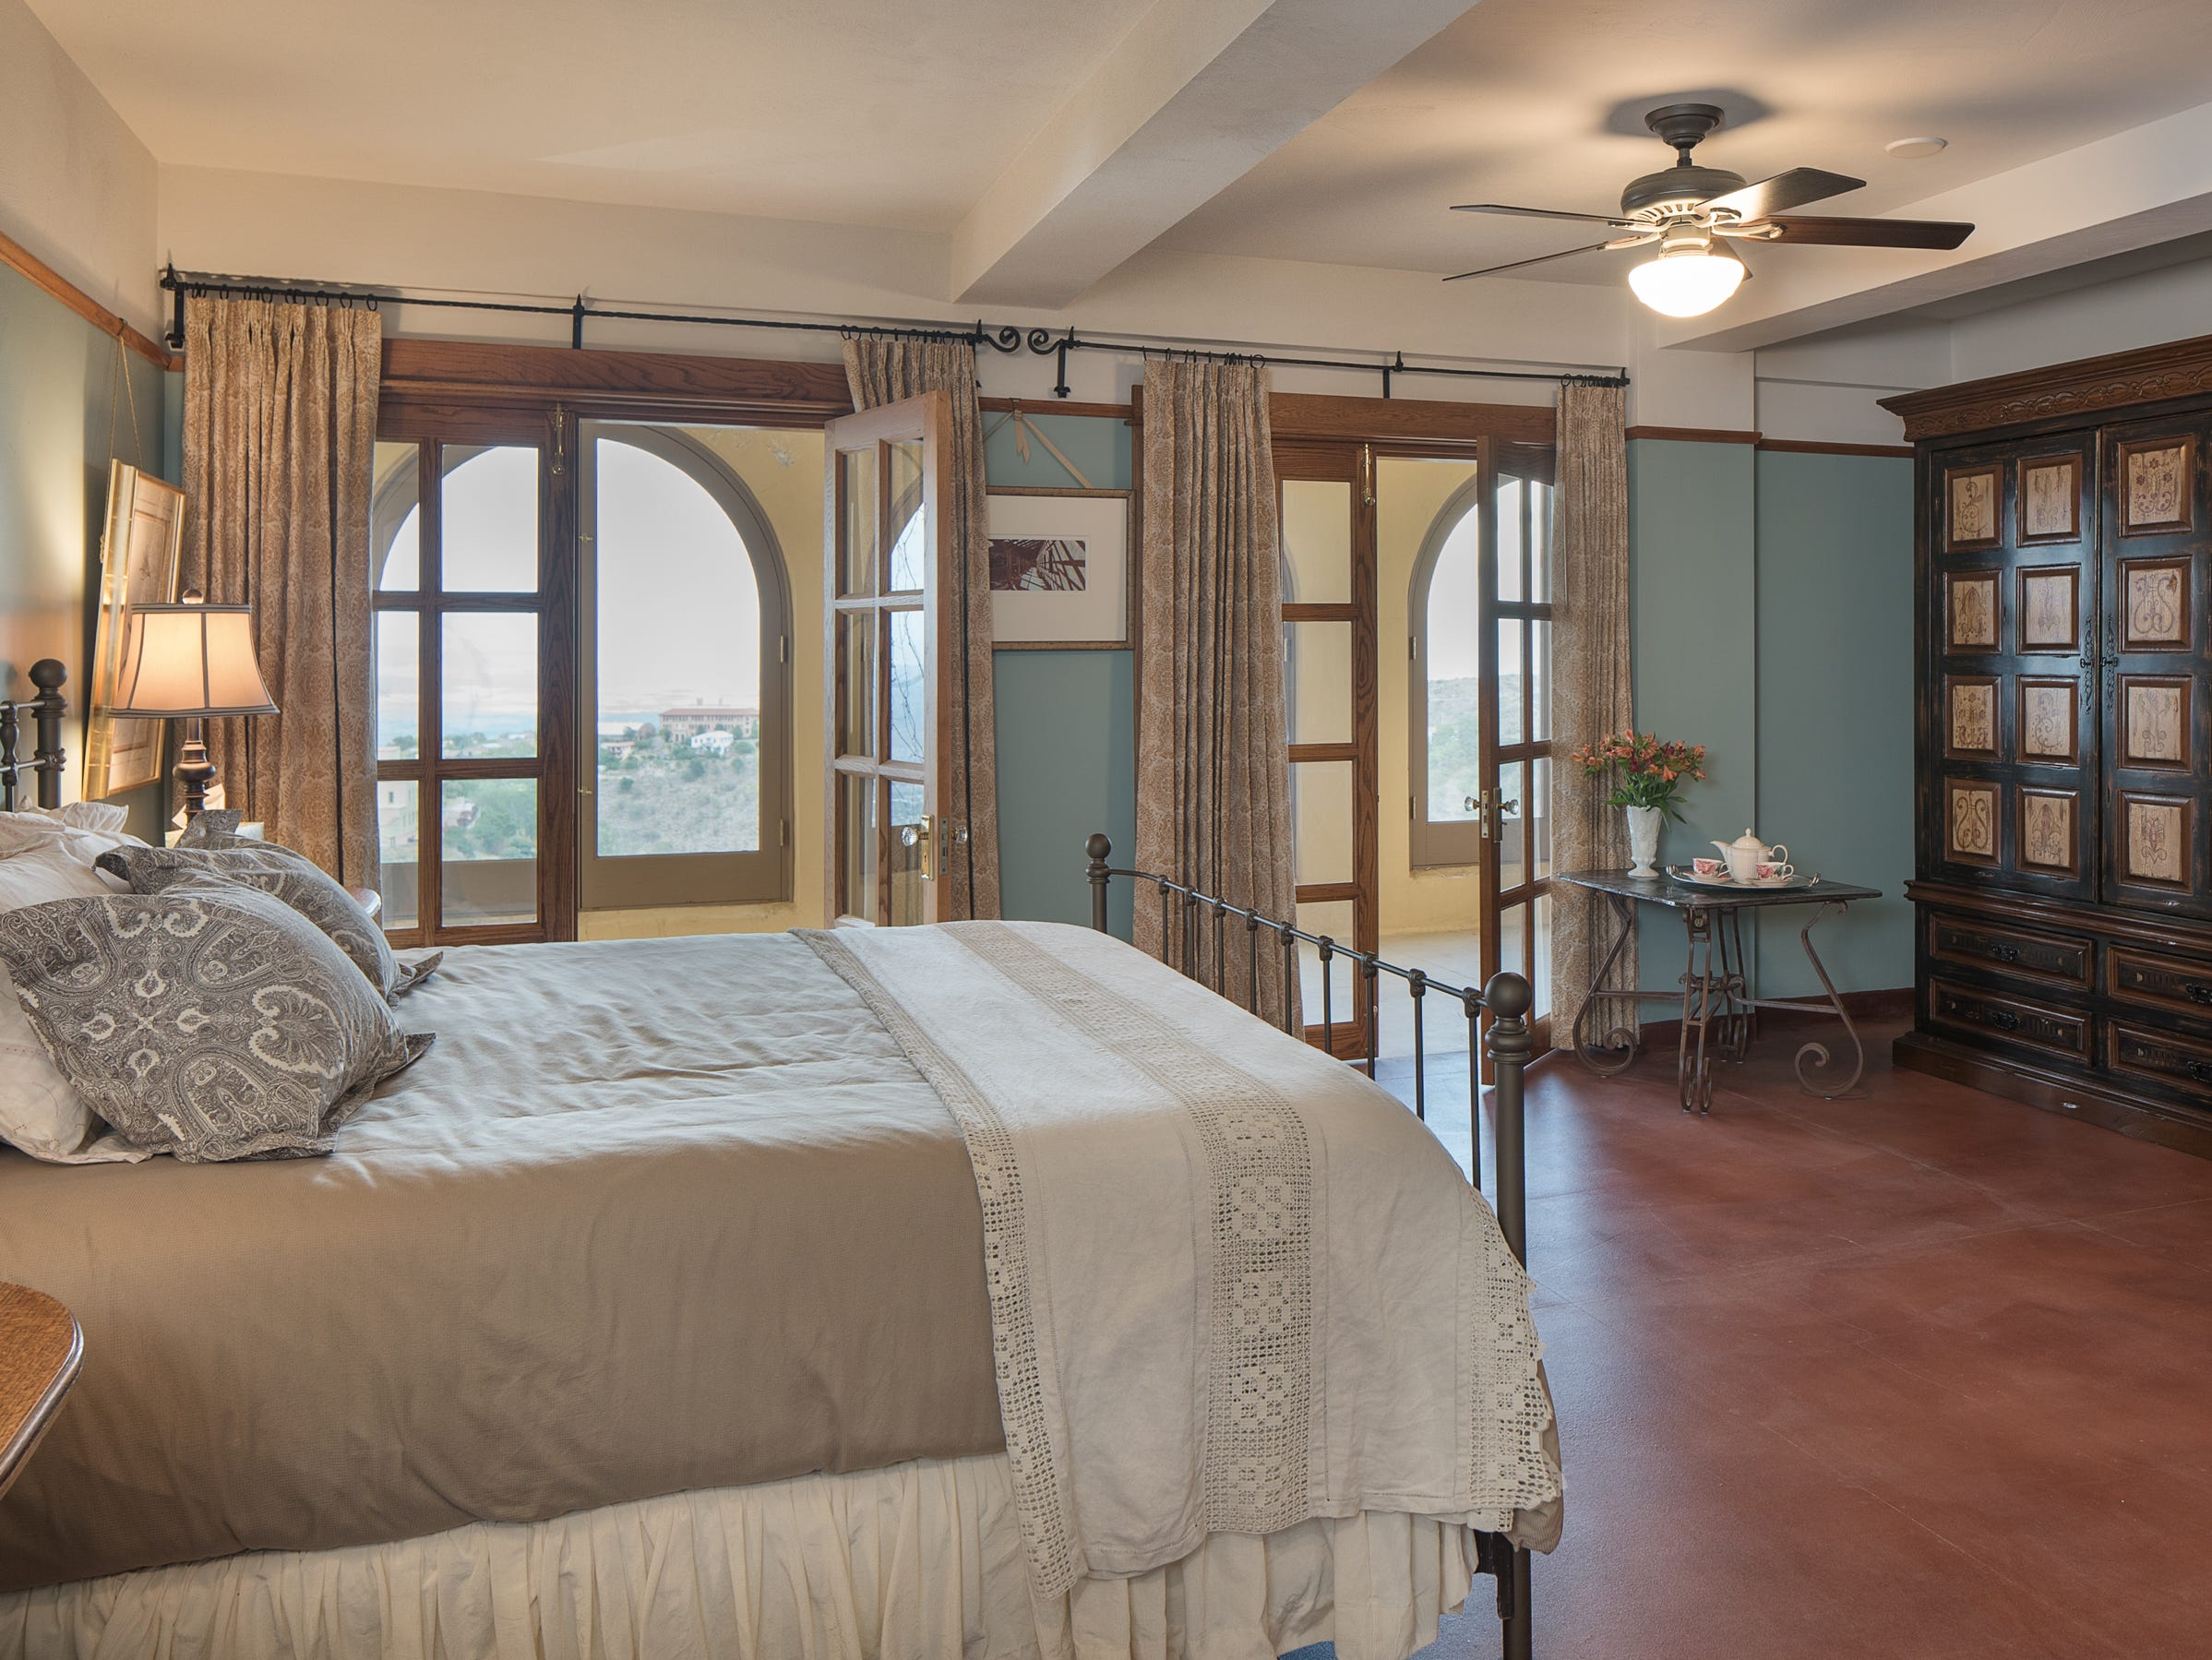 The king bedroom No. 2 is seen at the 100-year-old former Little Daisy Hotel in Jerome, which was later turned into a single-family home and is now on the market.